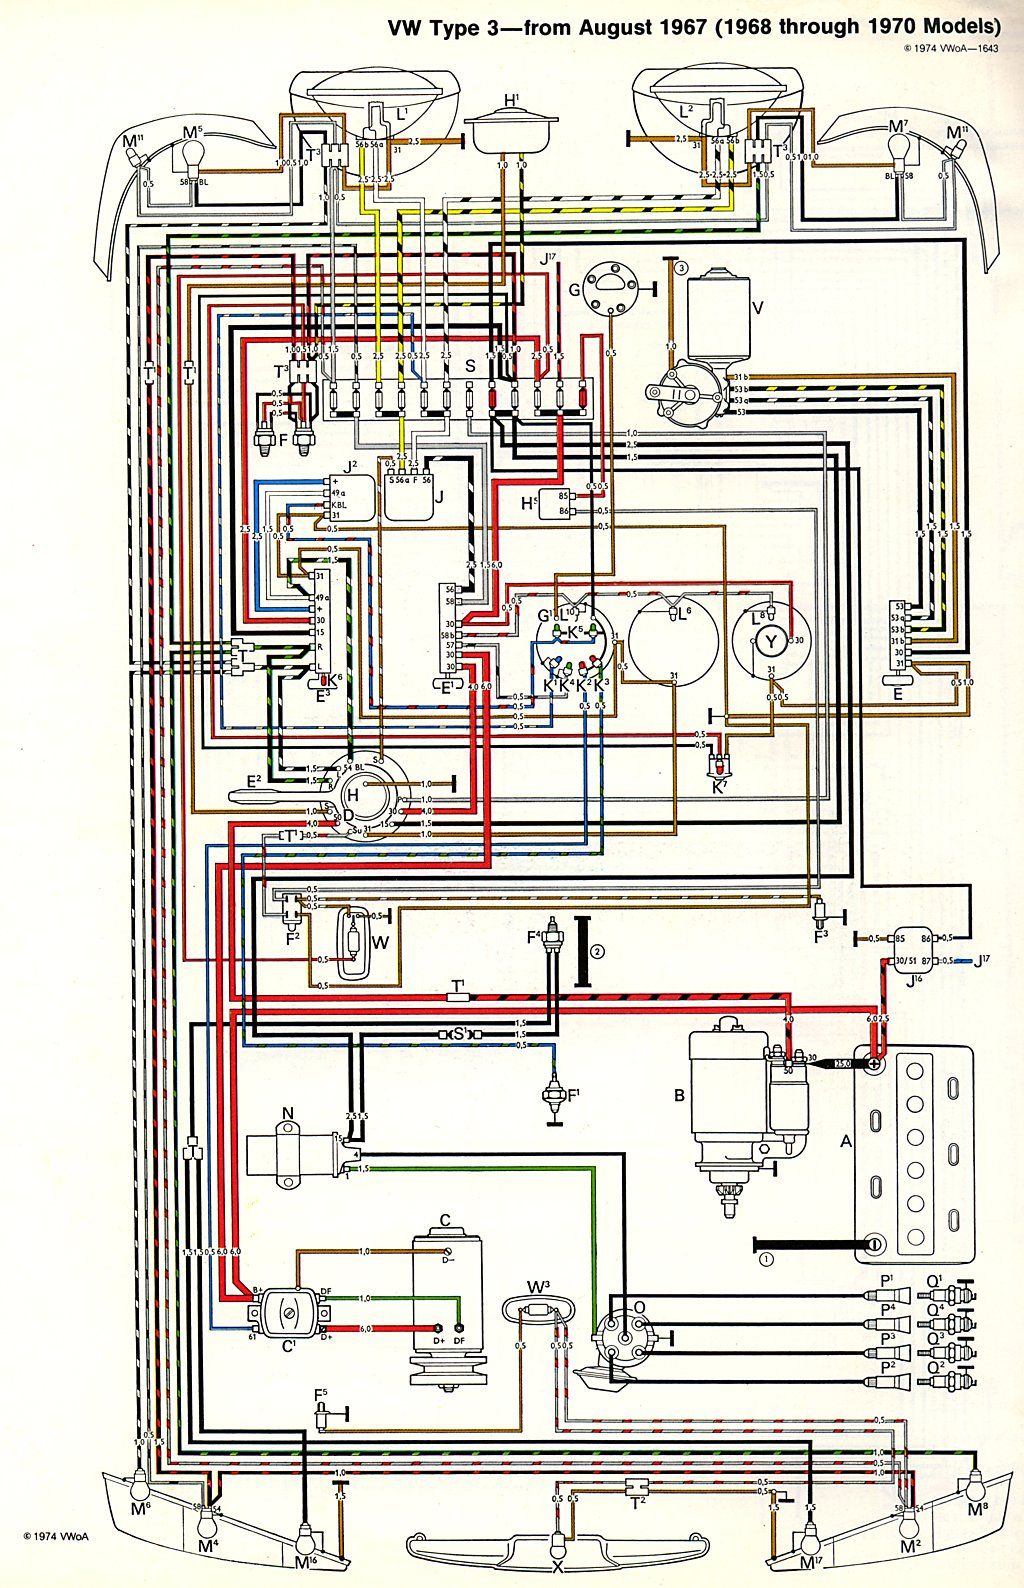 thesamba com type 3 wiring diagrams steering column wiring diagram vw type 3 vw type 3 wiring diagram #1